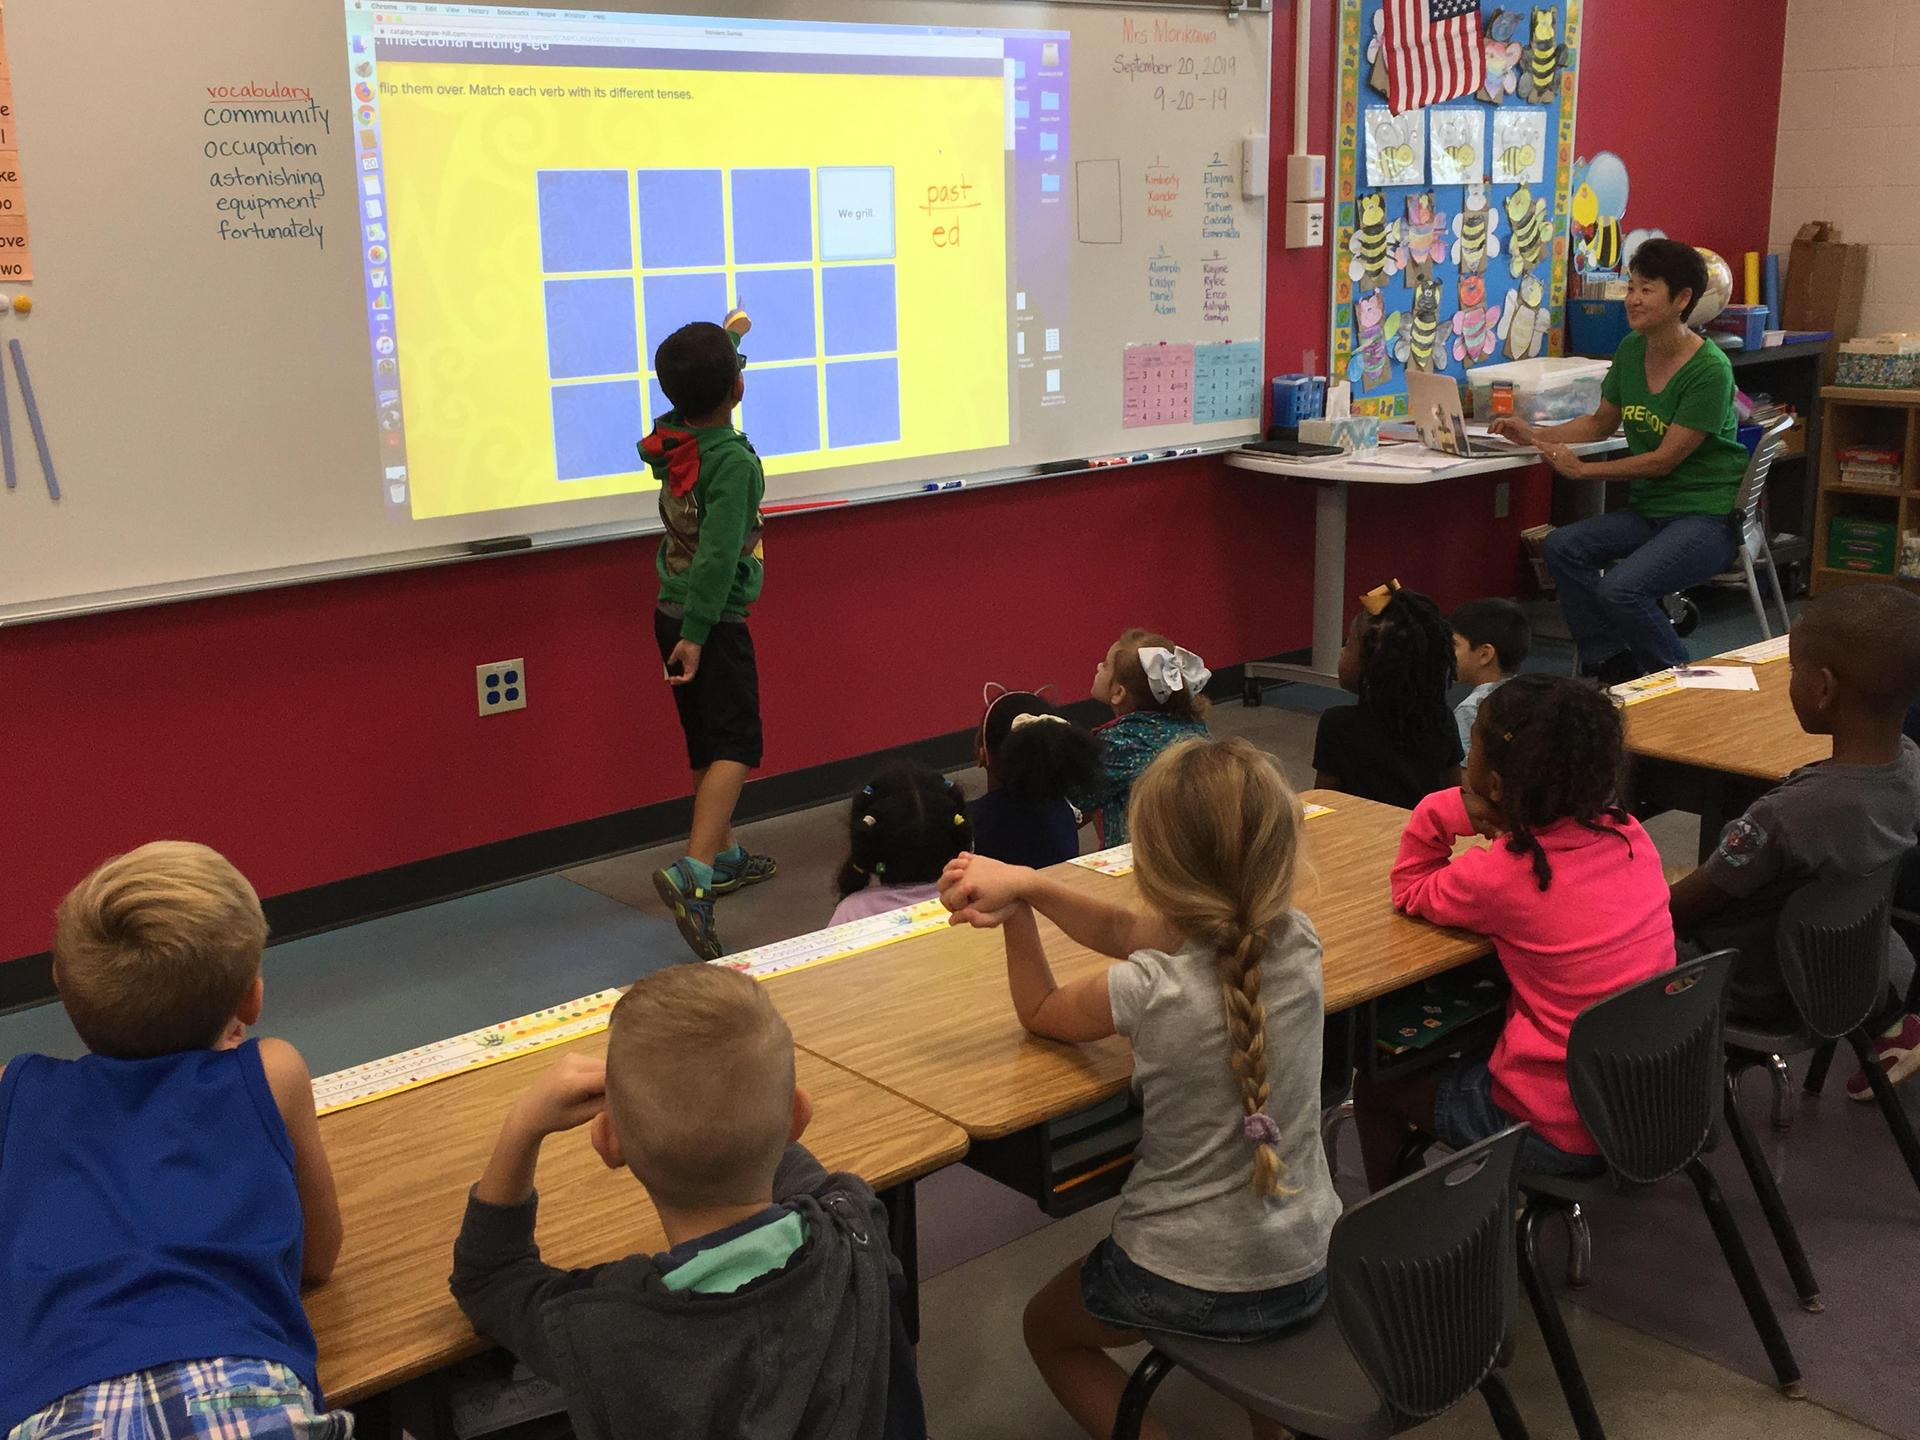 Student Using Laser Projector and Interactive Whiteboard